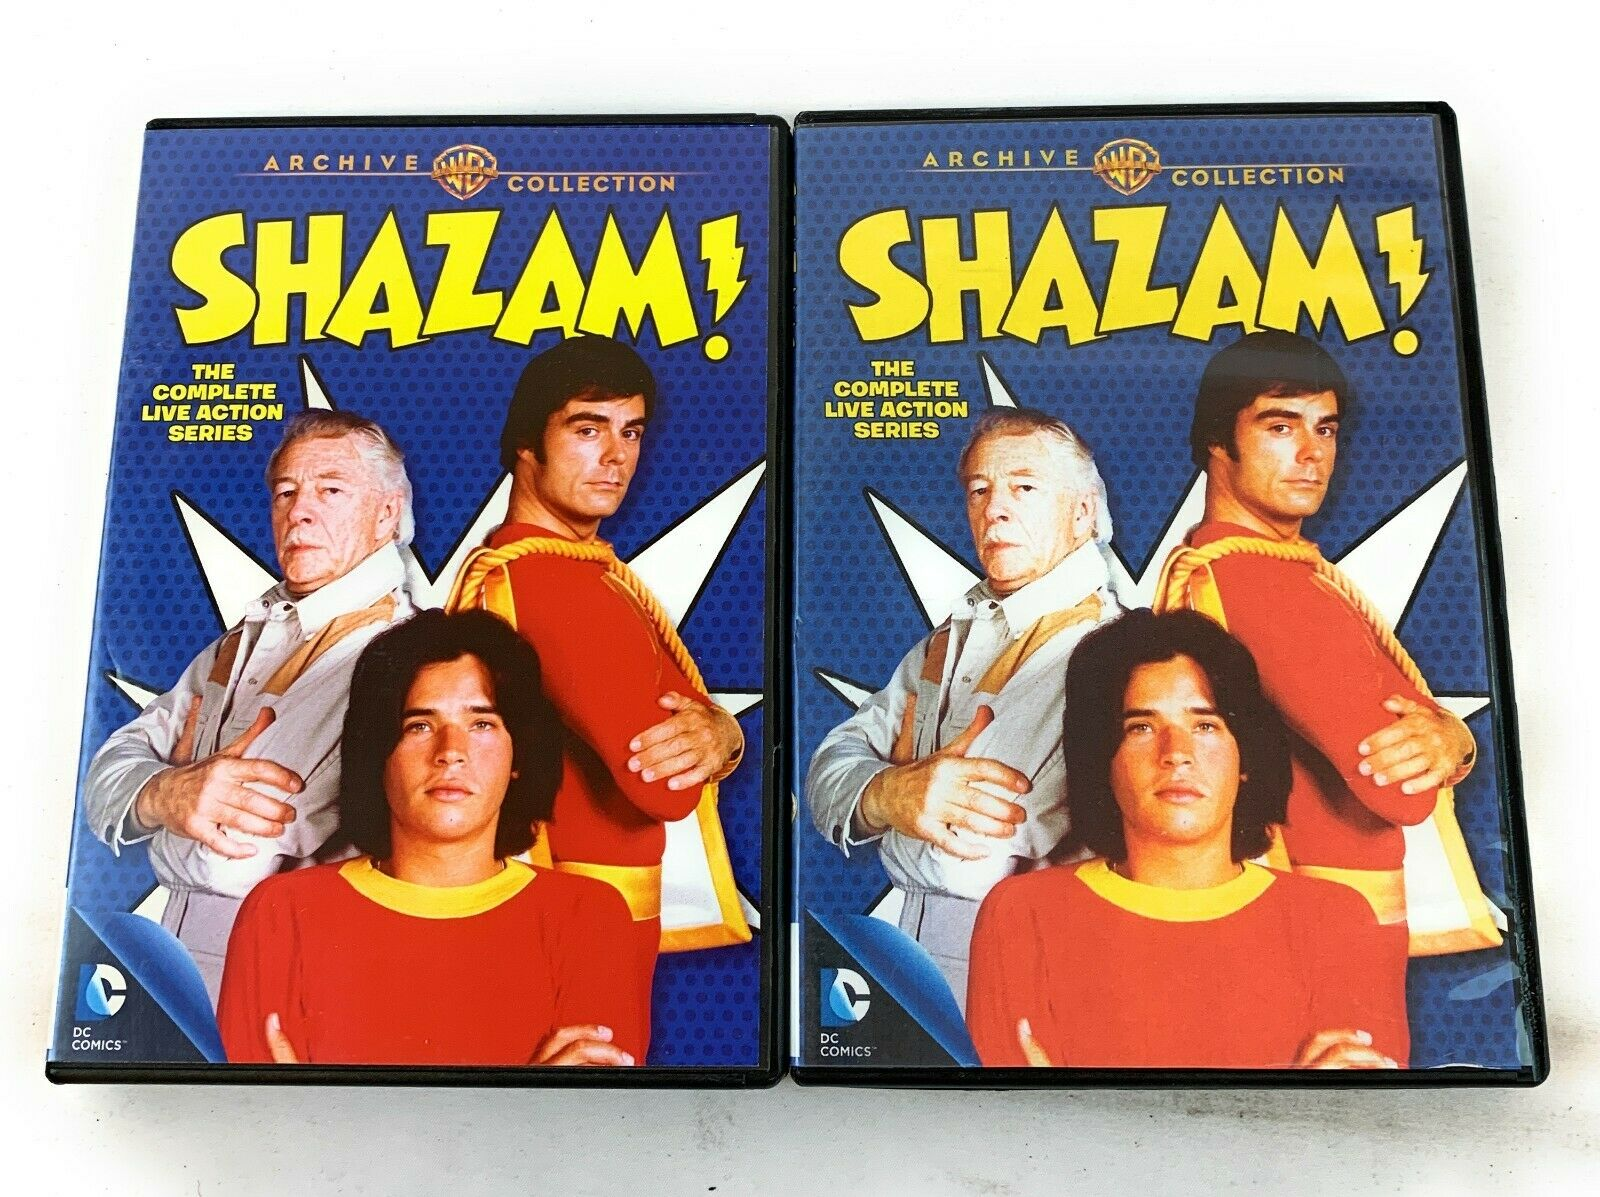 Shazam The Complete Live Action Series DVD, 2012, 3-Disc Set  - $17.99